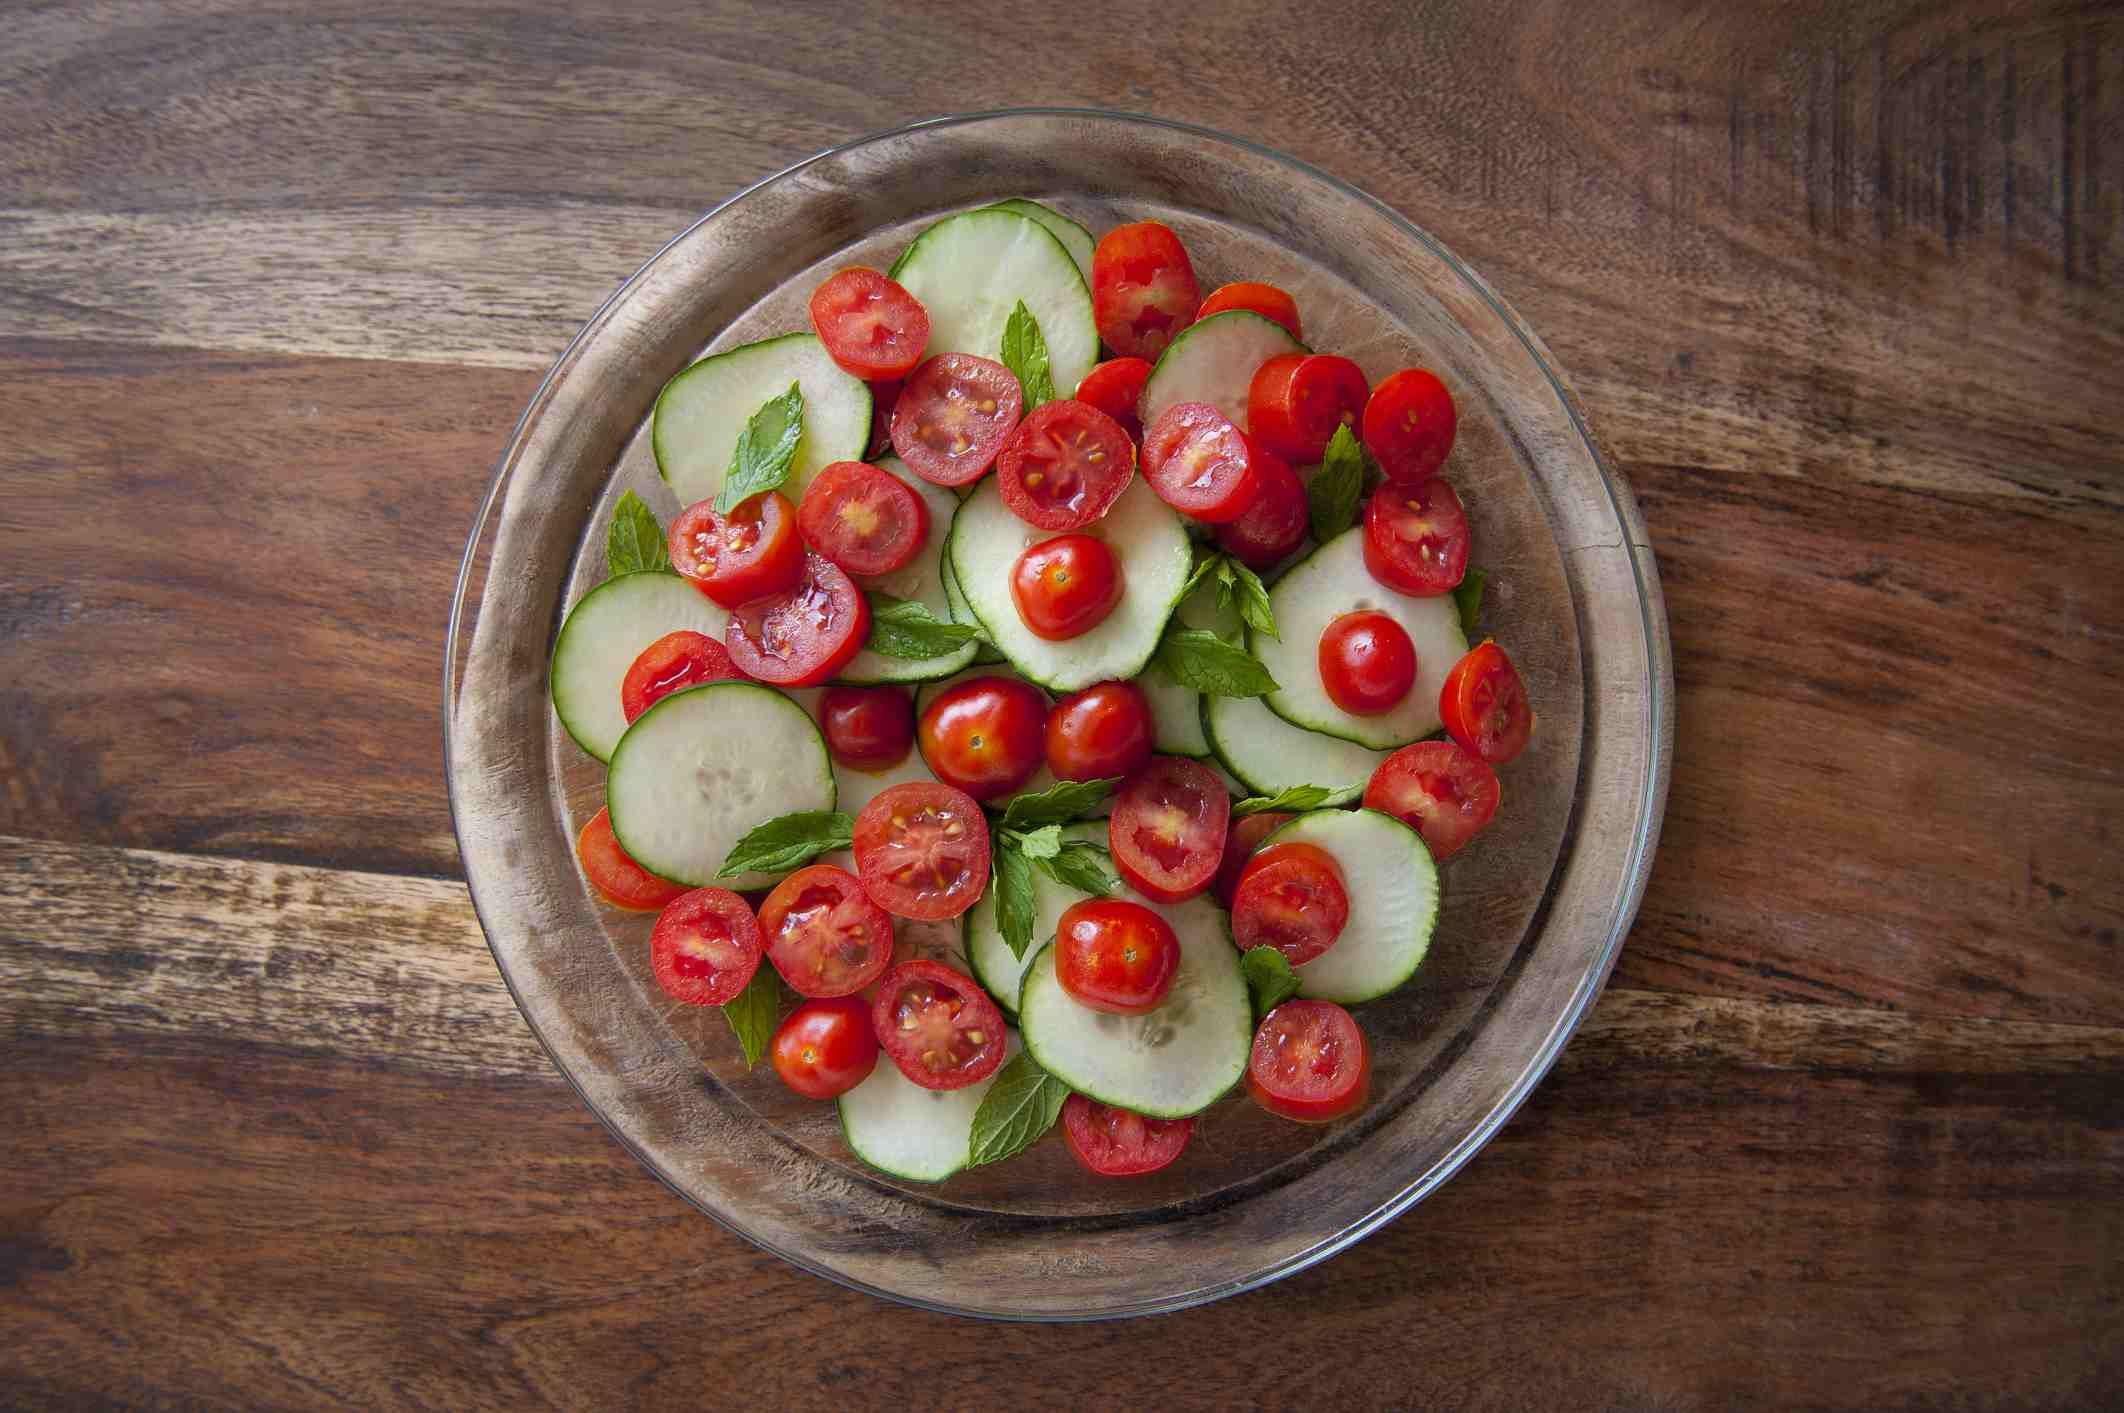 Cucumber and tomato salad is good for getting more tomatoes into your diet.